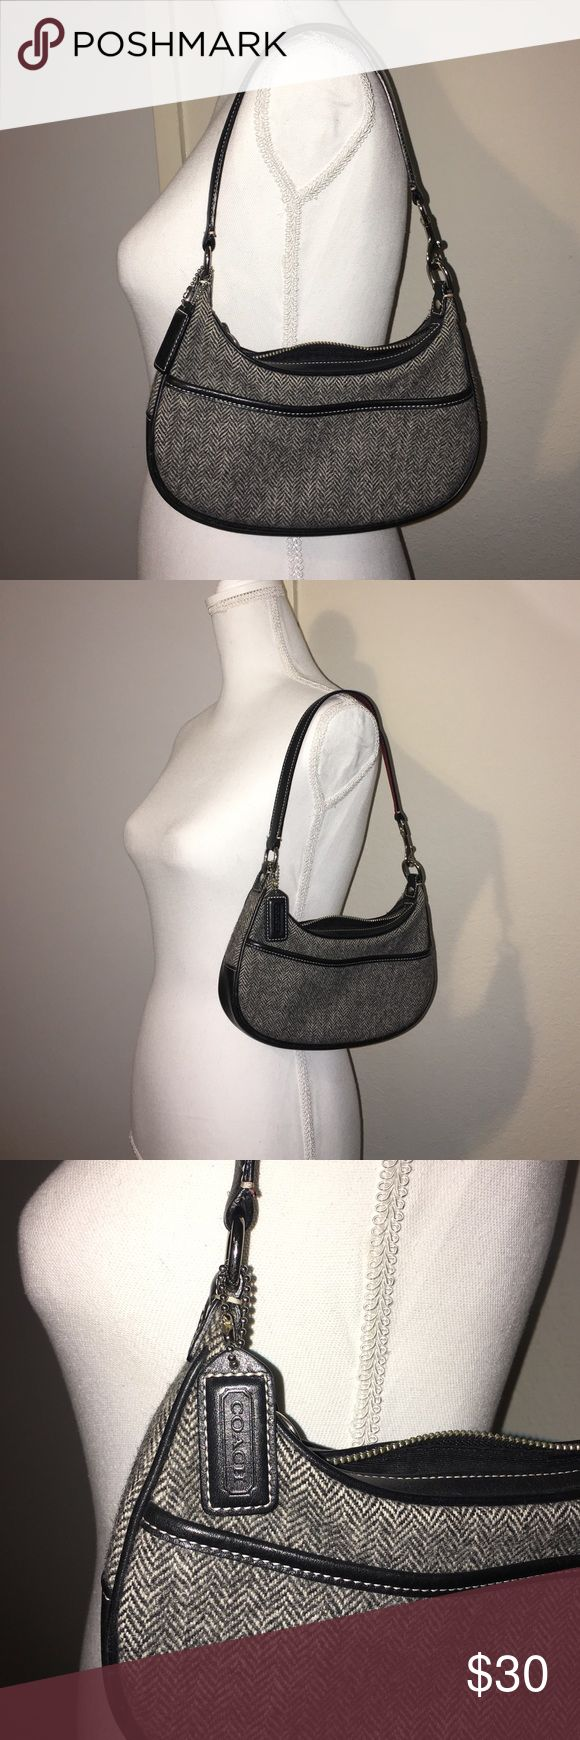 Authentic Coach hobo/clutch bag Authentic Coach hobo/clutch bag. Very nice black and gray fabric material. Coach Bags Clutches & Wristlets